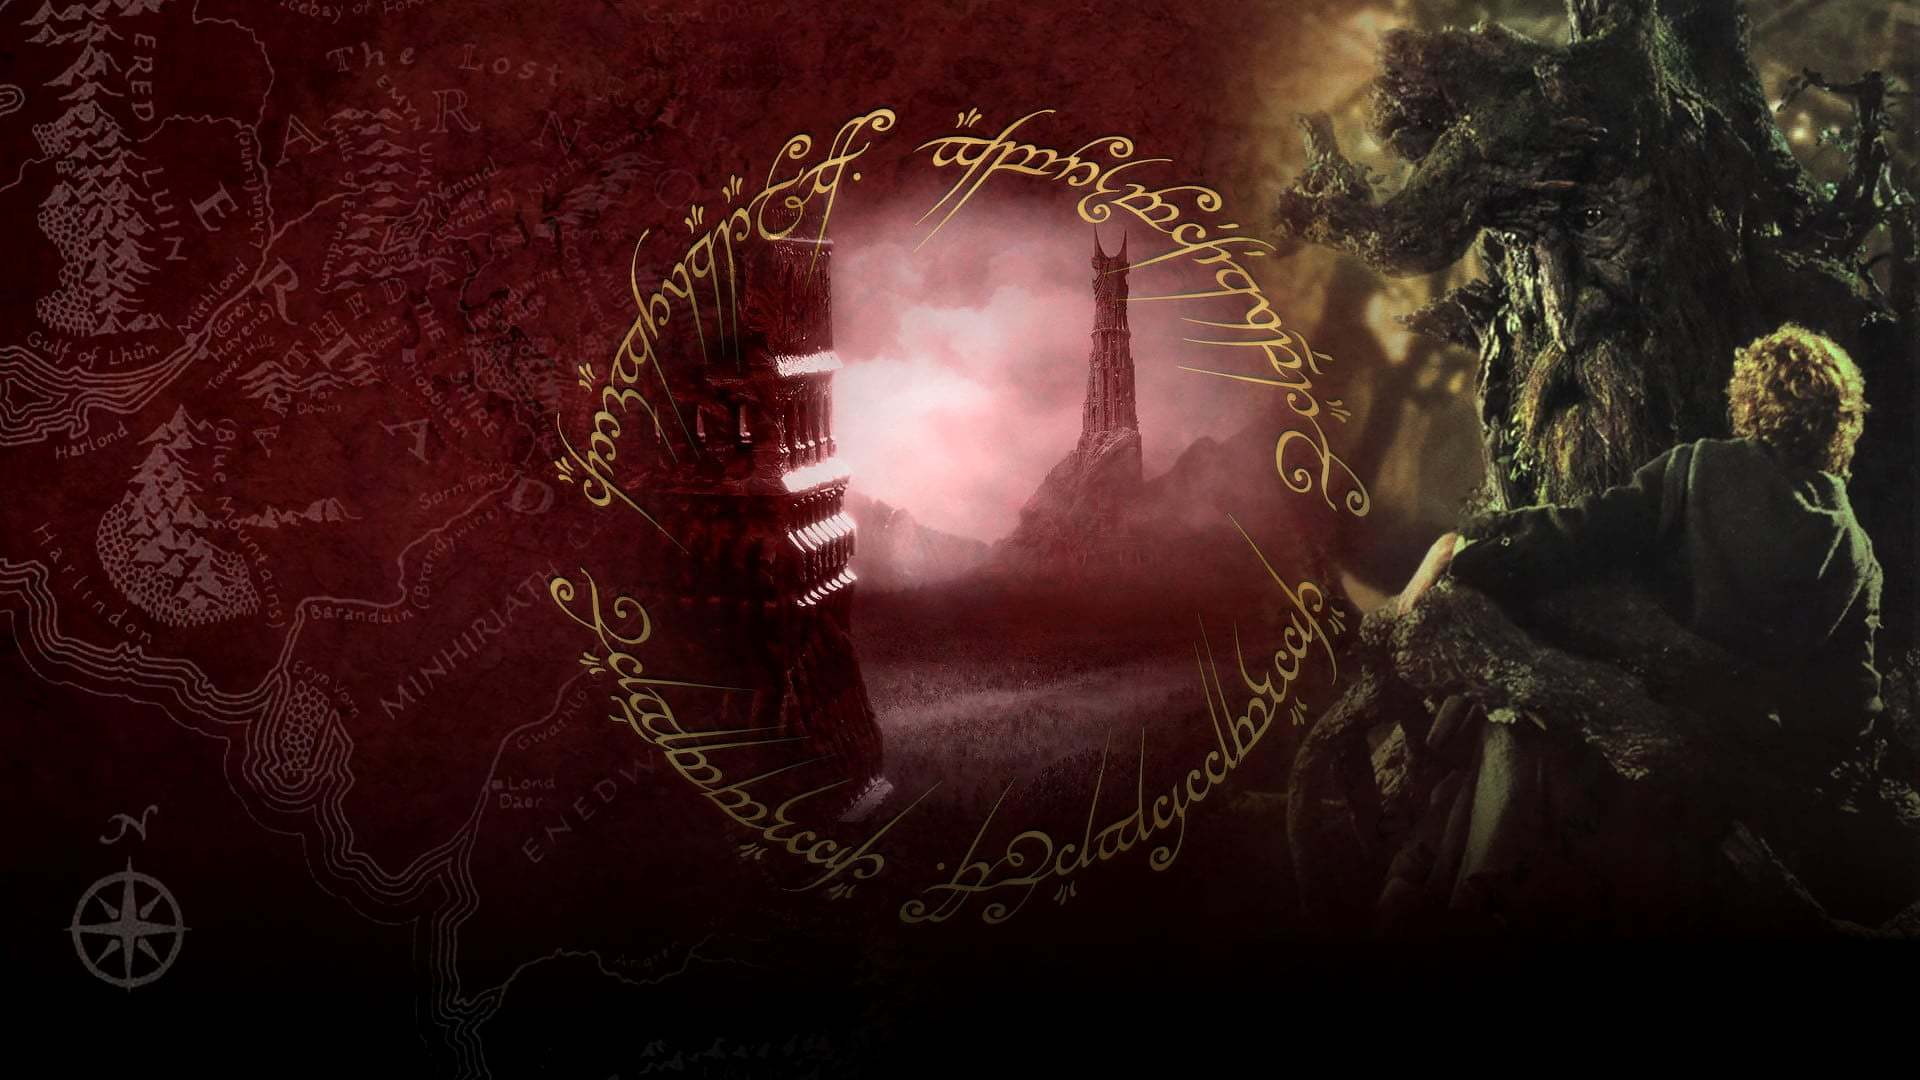 Кадры из фильма Властелин колец: Две крепости The Lord of the Rings: The Two Towers 2002